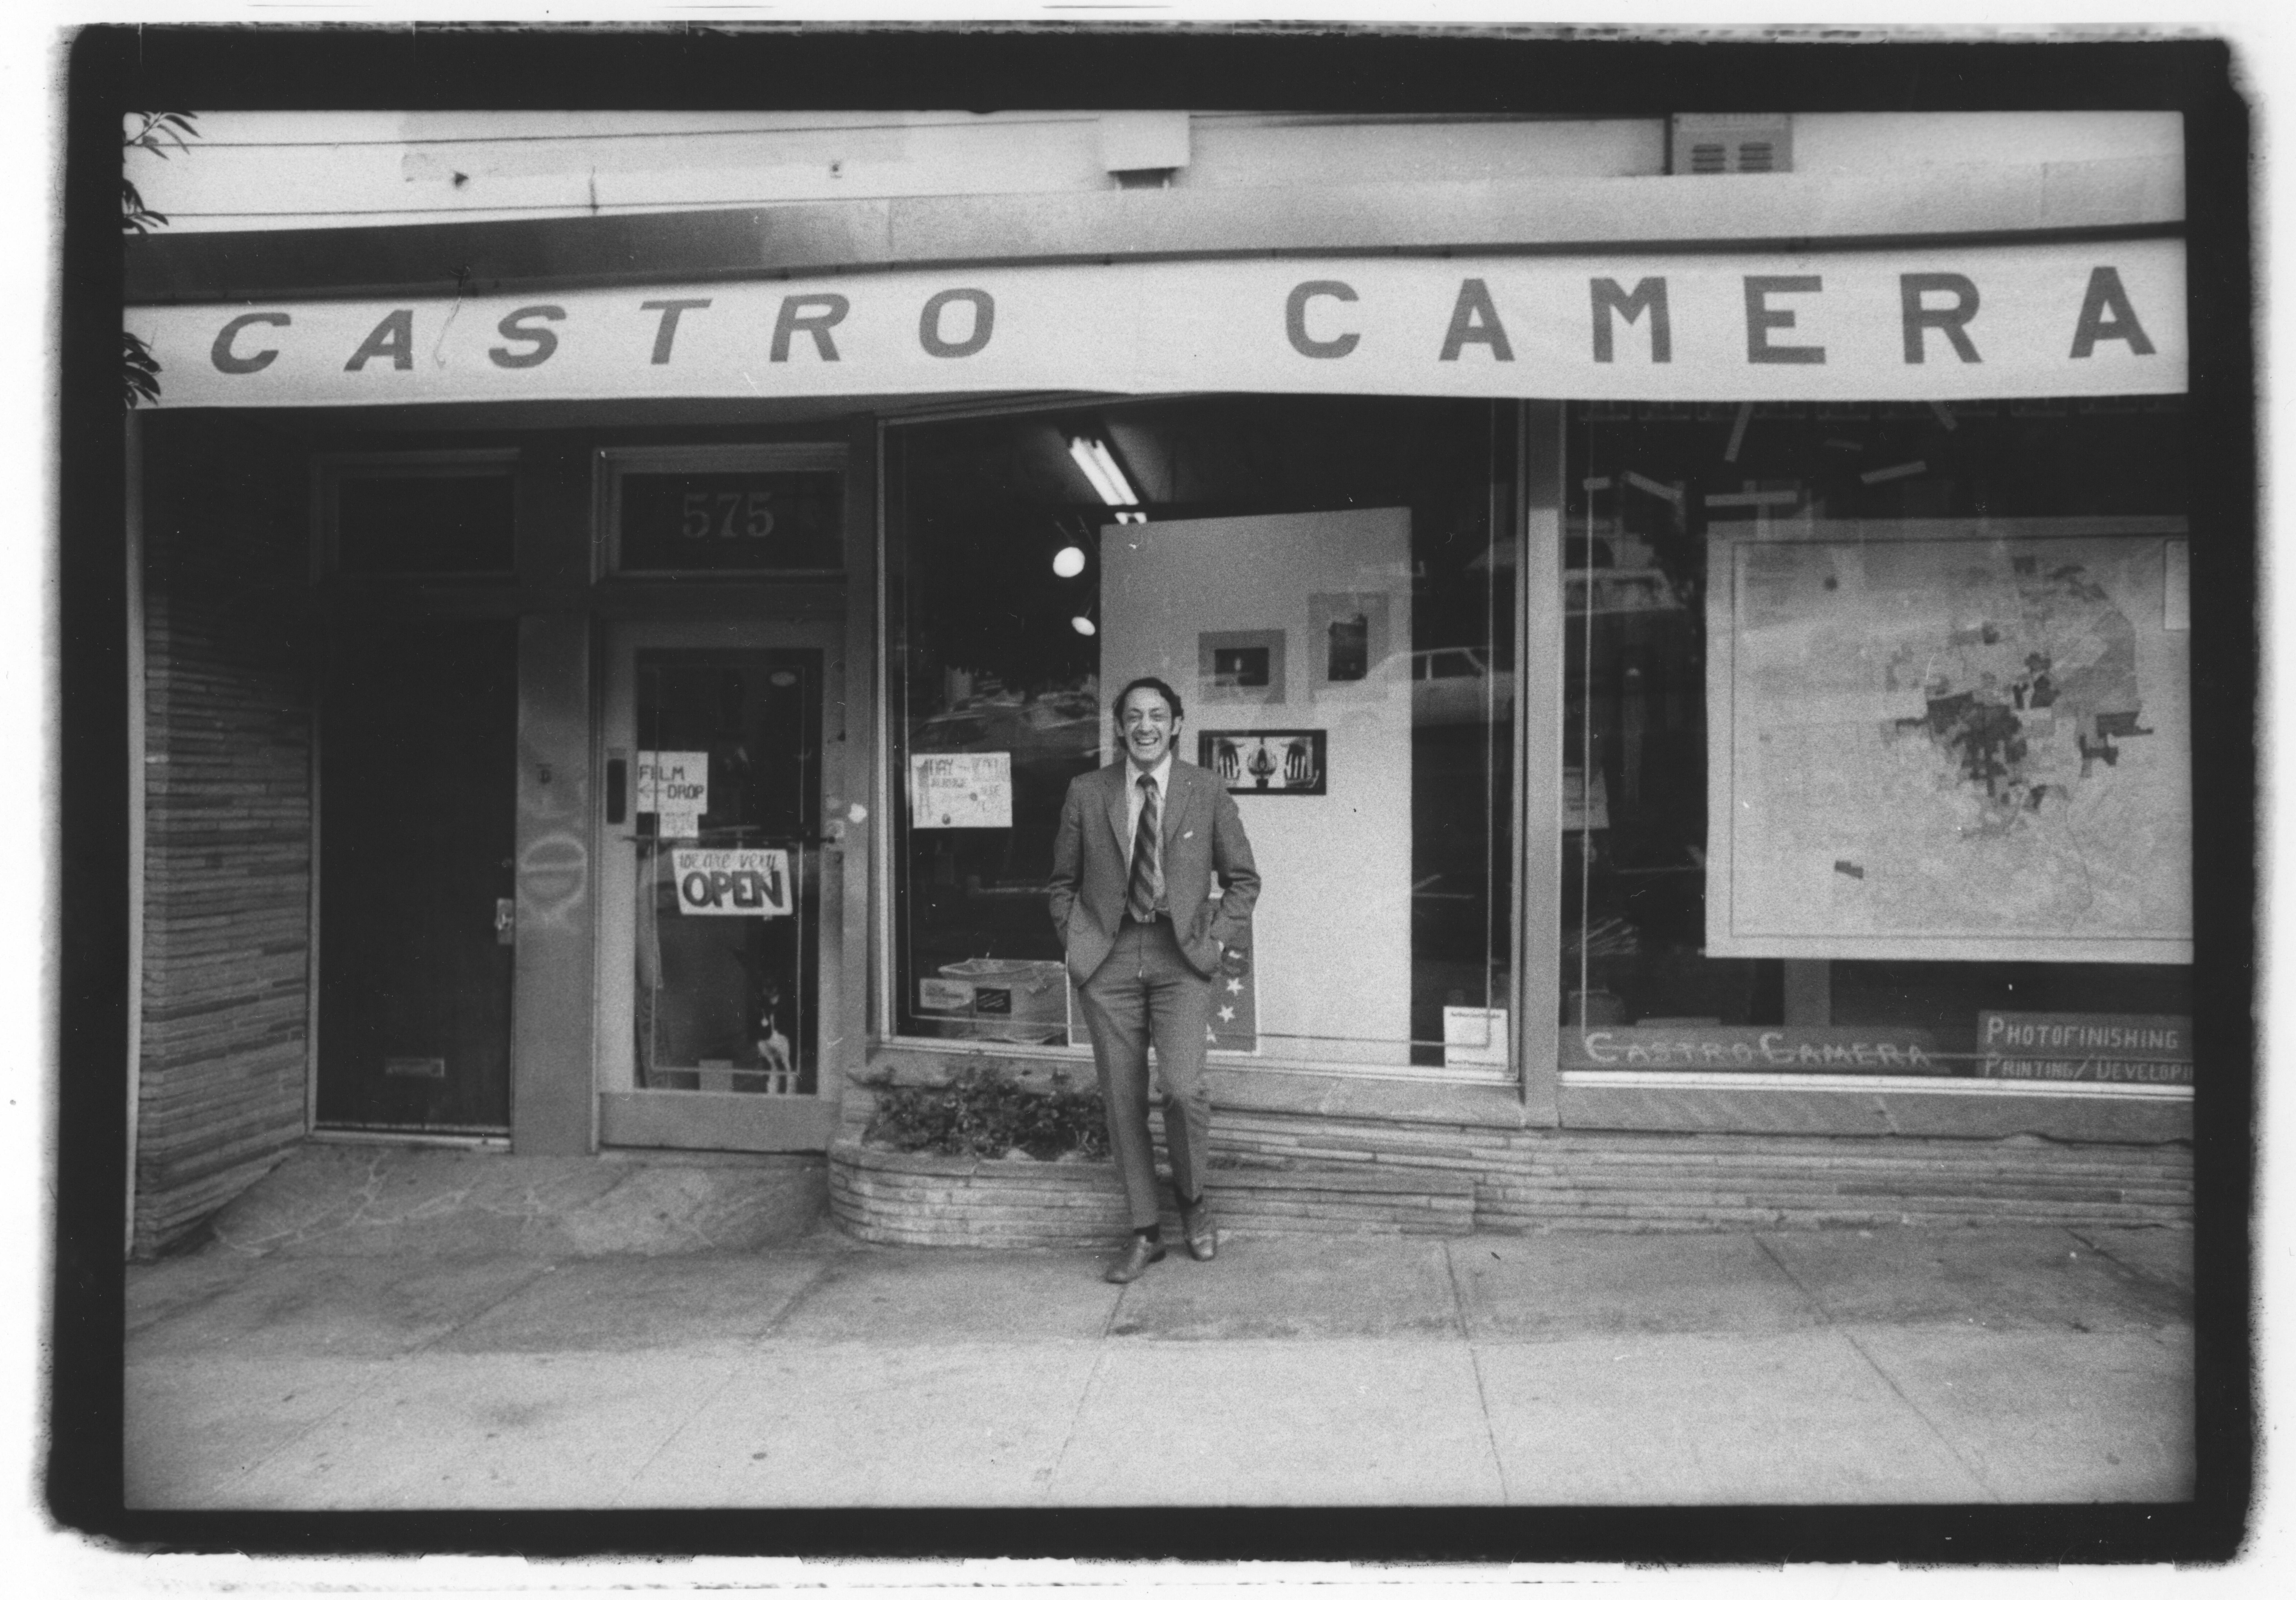 harvey-milk-and-camera-store-getty-images